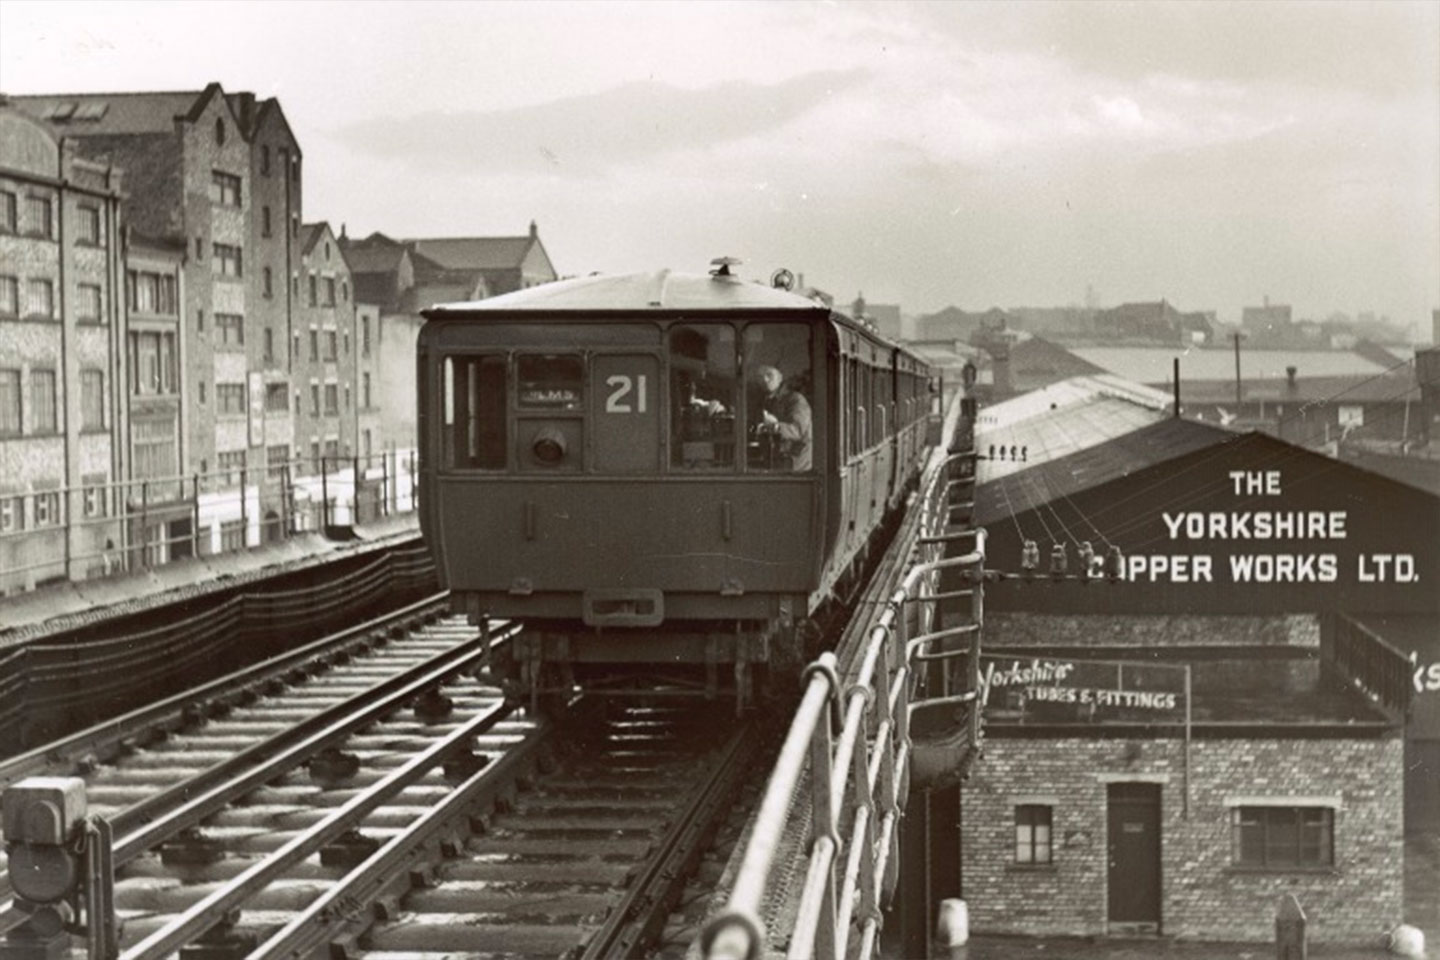 Liverpool Overhead Railway - the end of the line